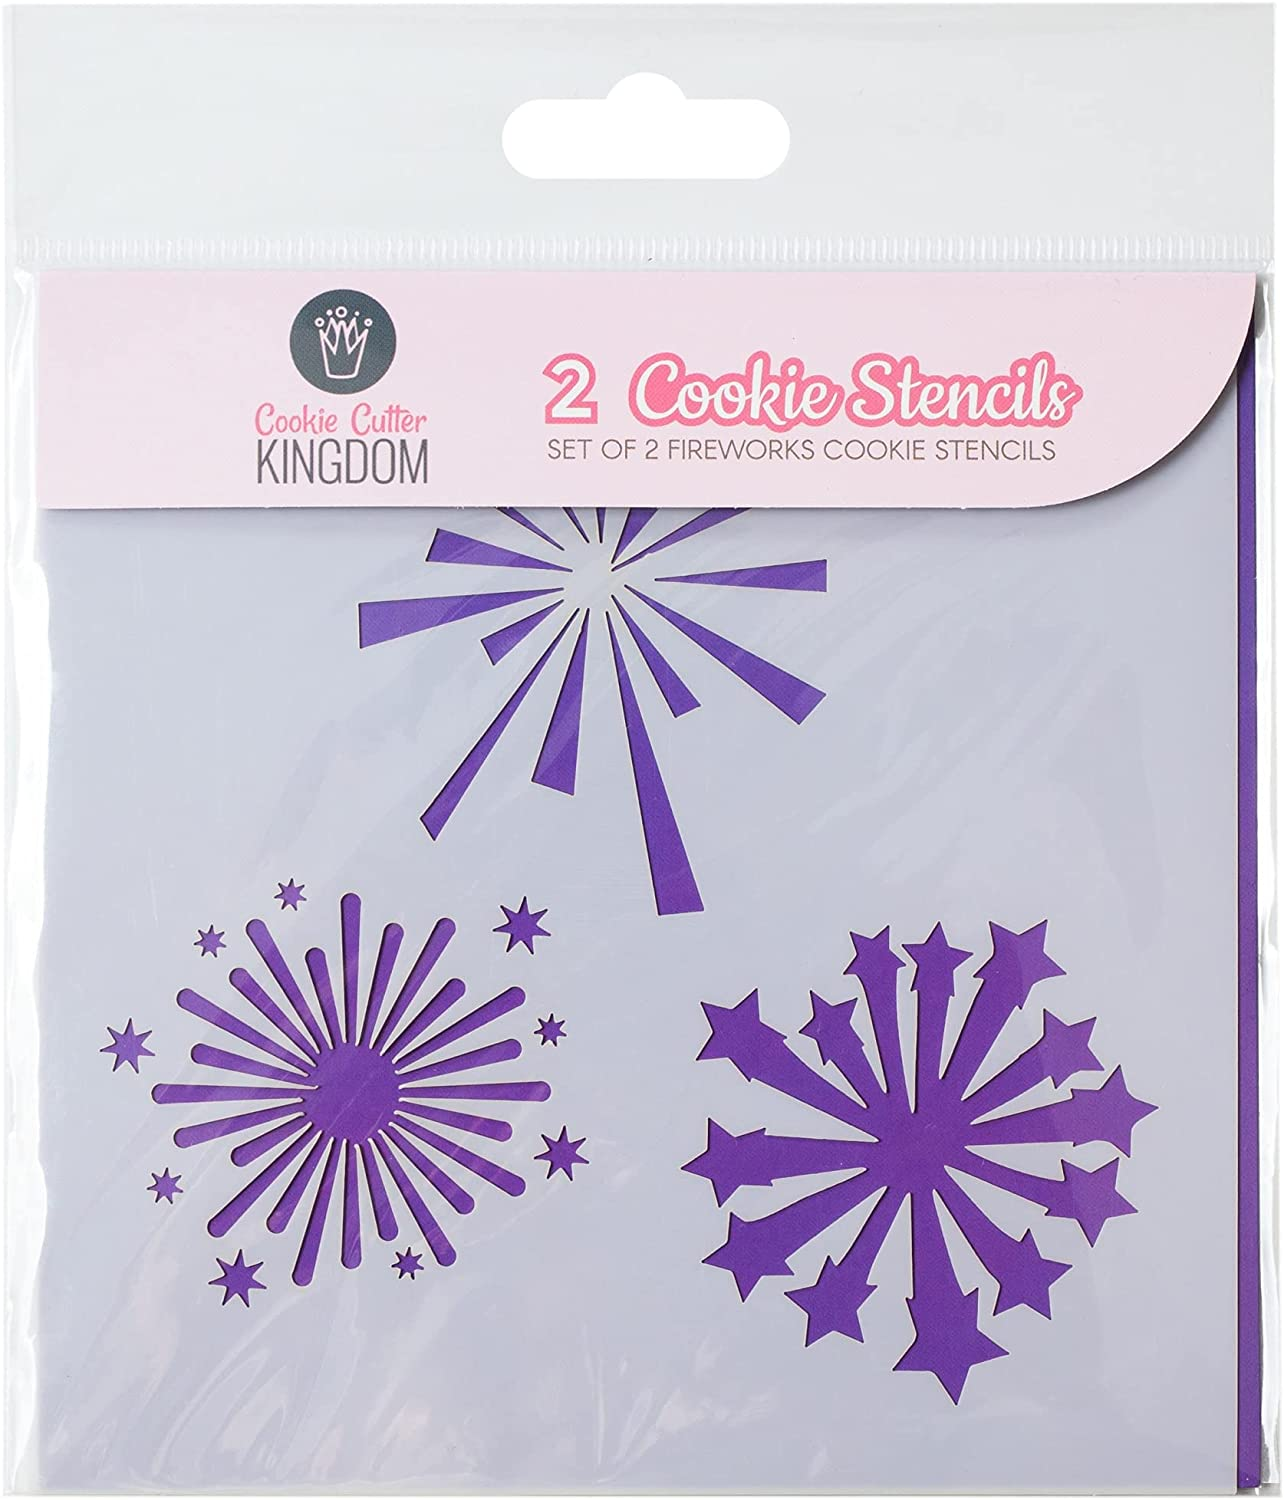 Fireworks Cookie Stencil for Food Decorating. 2 Piece Cookie Cutter Kingdom Stencil for Royal Icing or Food Spray. 5.5 x 5.5 Inch Size. Fourth of July Stencil.